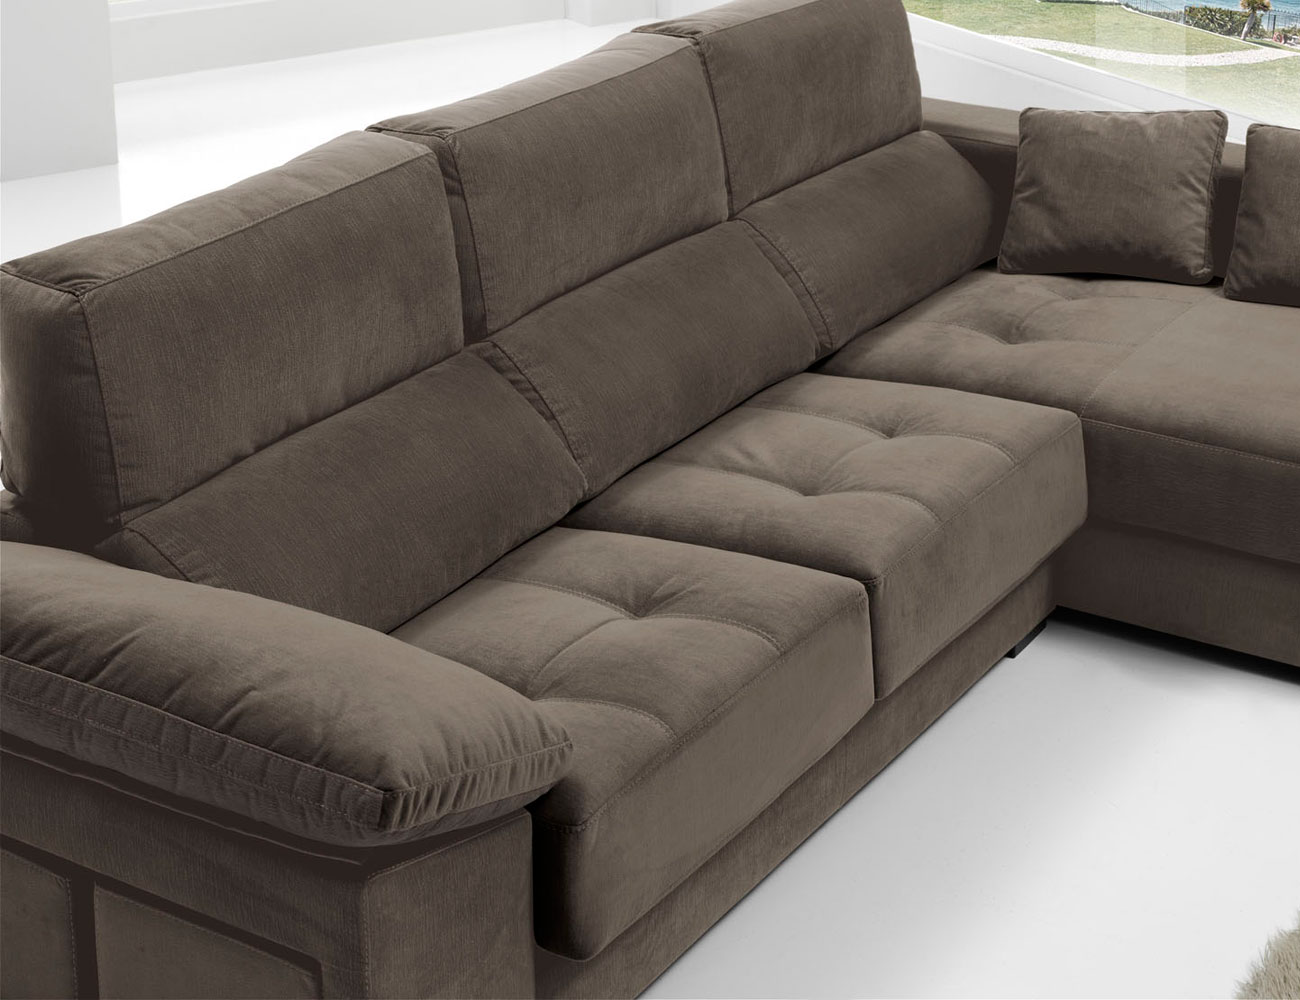 Sofa chaiselongue anti manchas bering pouf 22